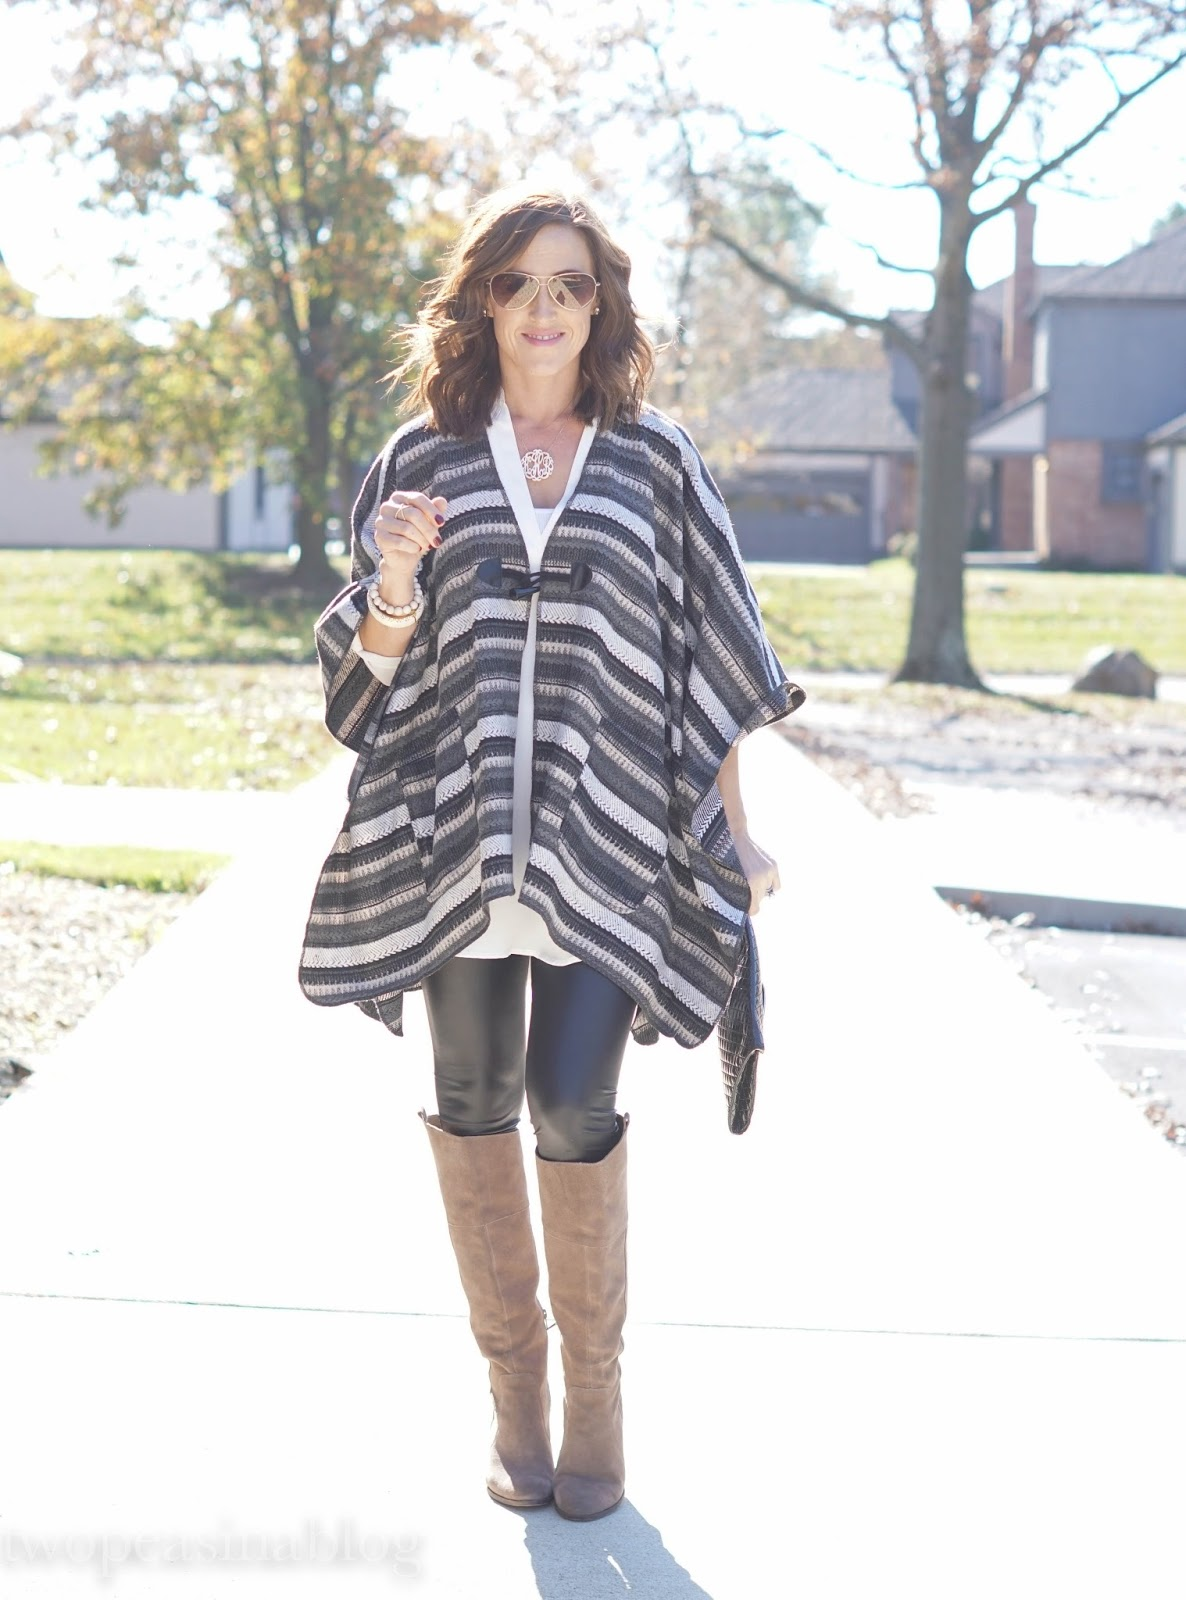 d7a302332336d1 Poncho: Nordstrom // Tunic: Nordstrom (My favorite!) // Faux Leather  Leggings: Charlotte Russe (On sale - $10!!) // Boots: Last year, LOVE these  at Sole ...